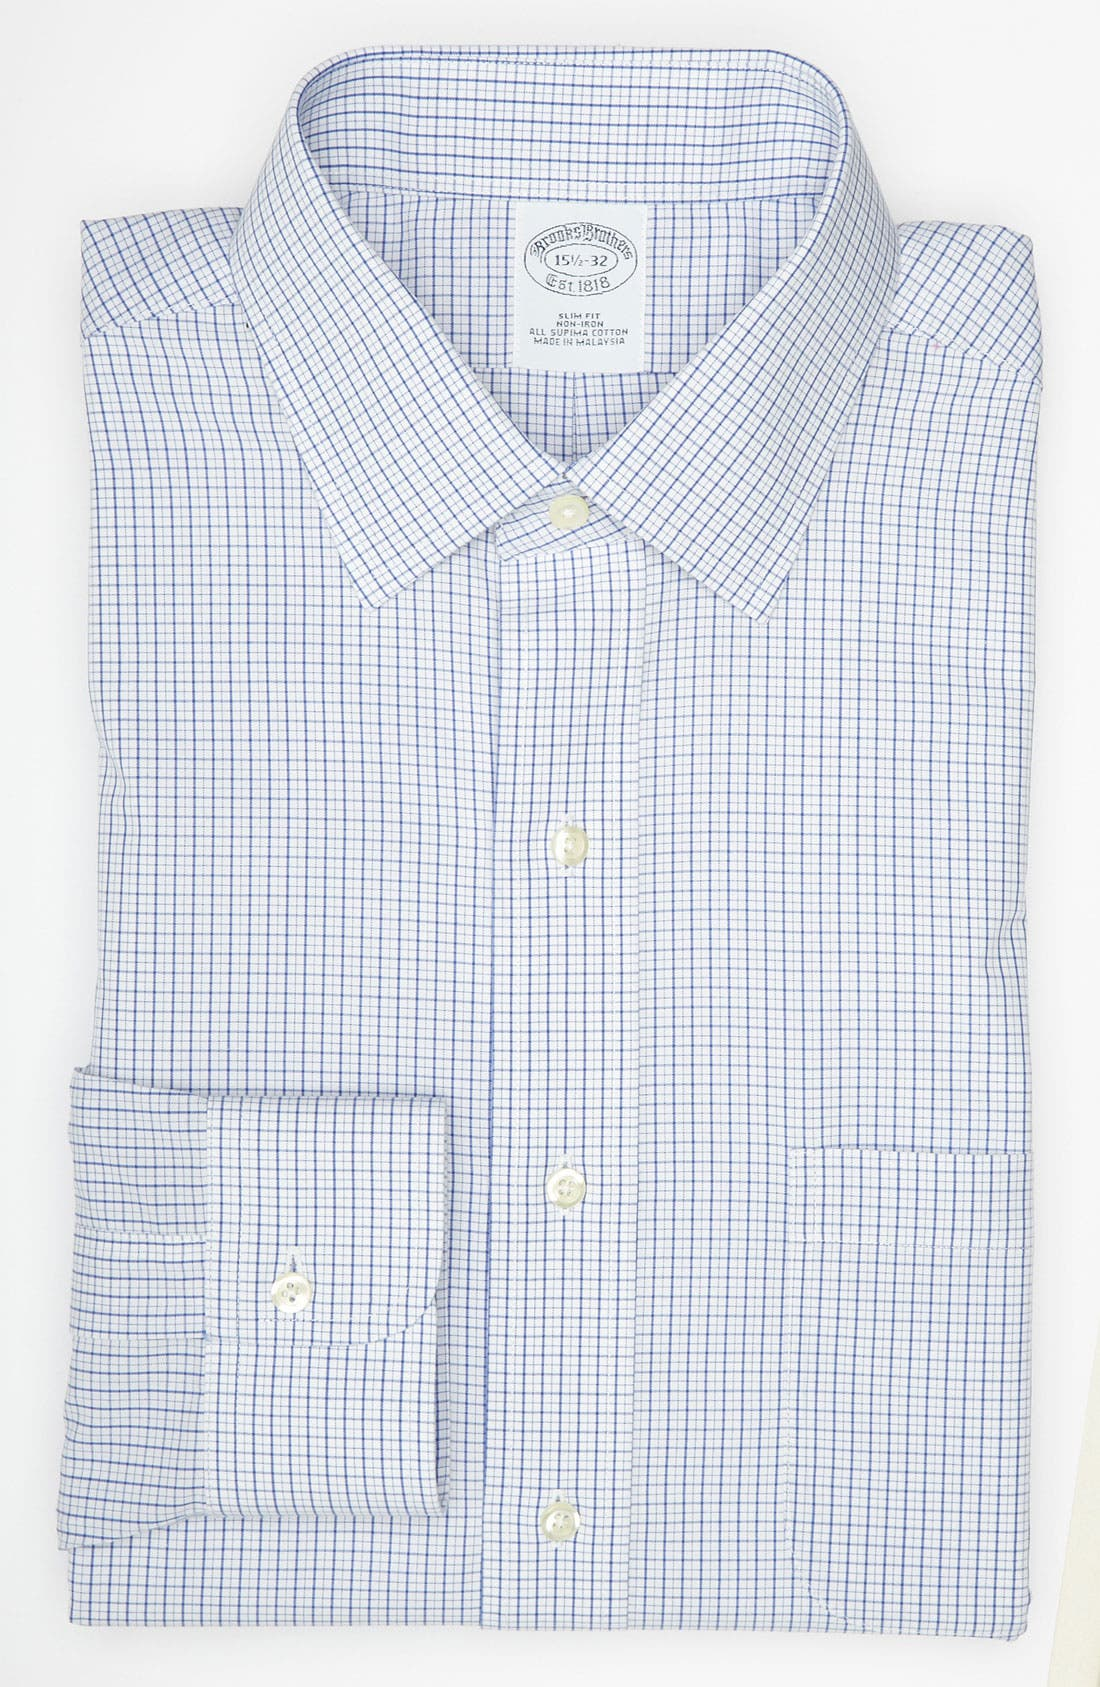 Main Image - Brooks Brothers Slim Fit Non-Iron Dress Shirt